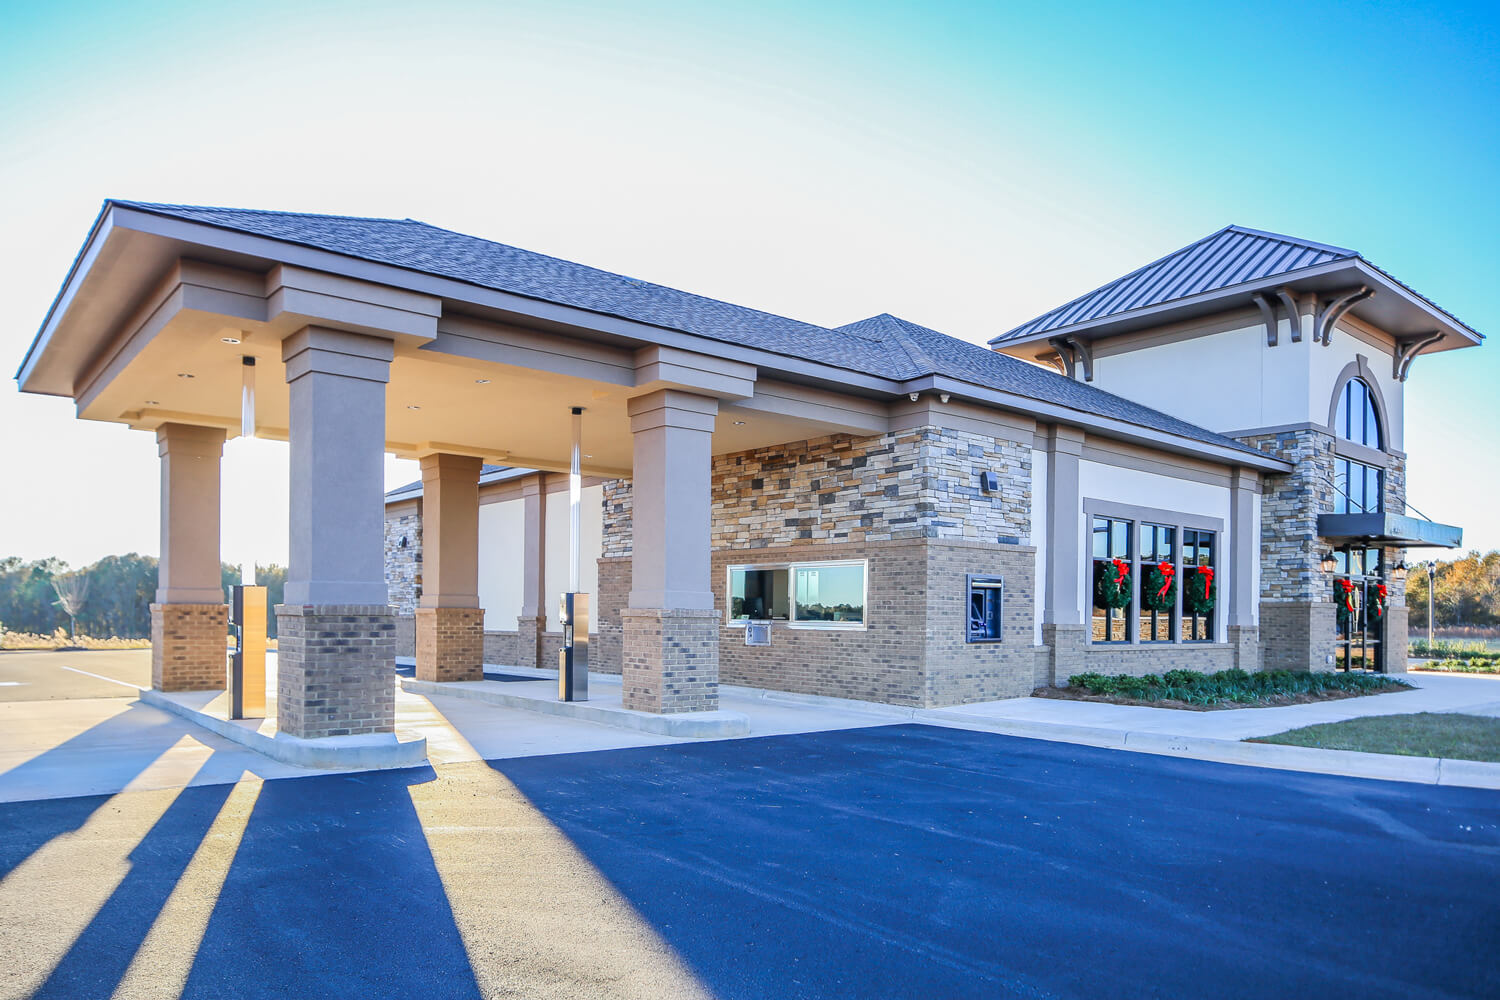 First Cahawba Bank - Teller Drive Through - Designed by Foshee Architecture